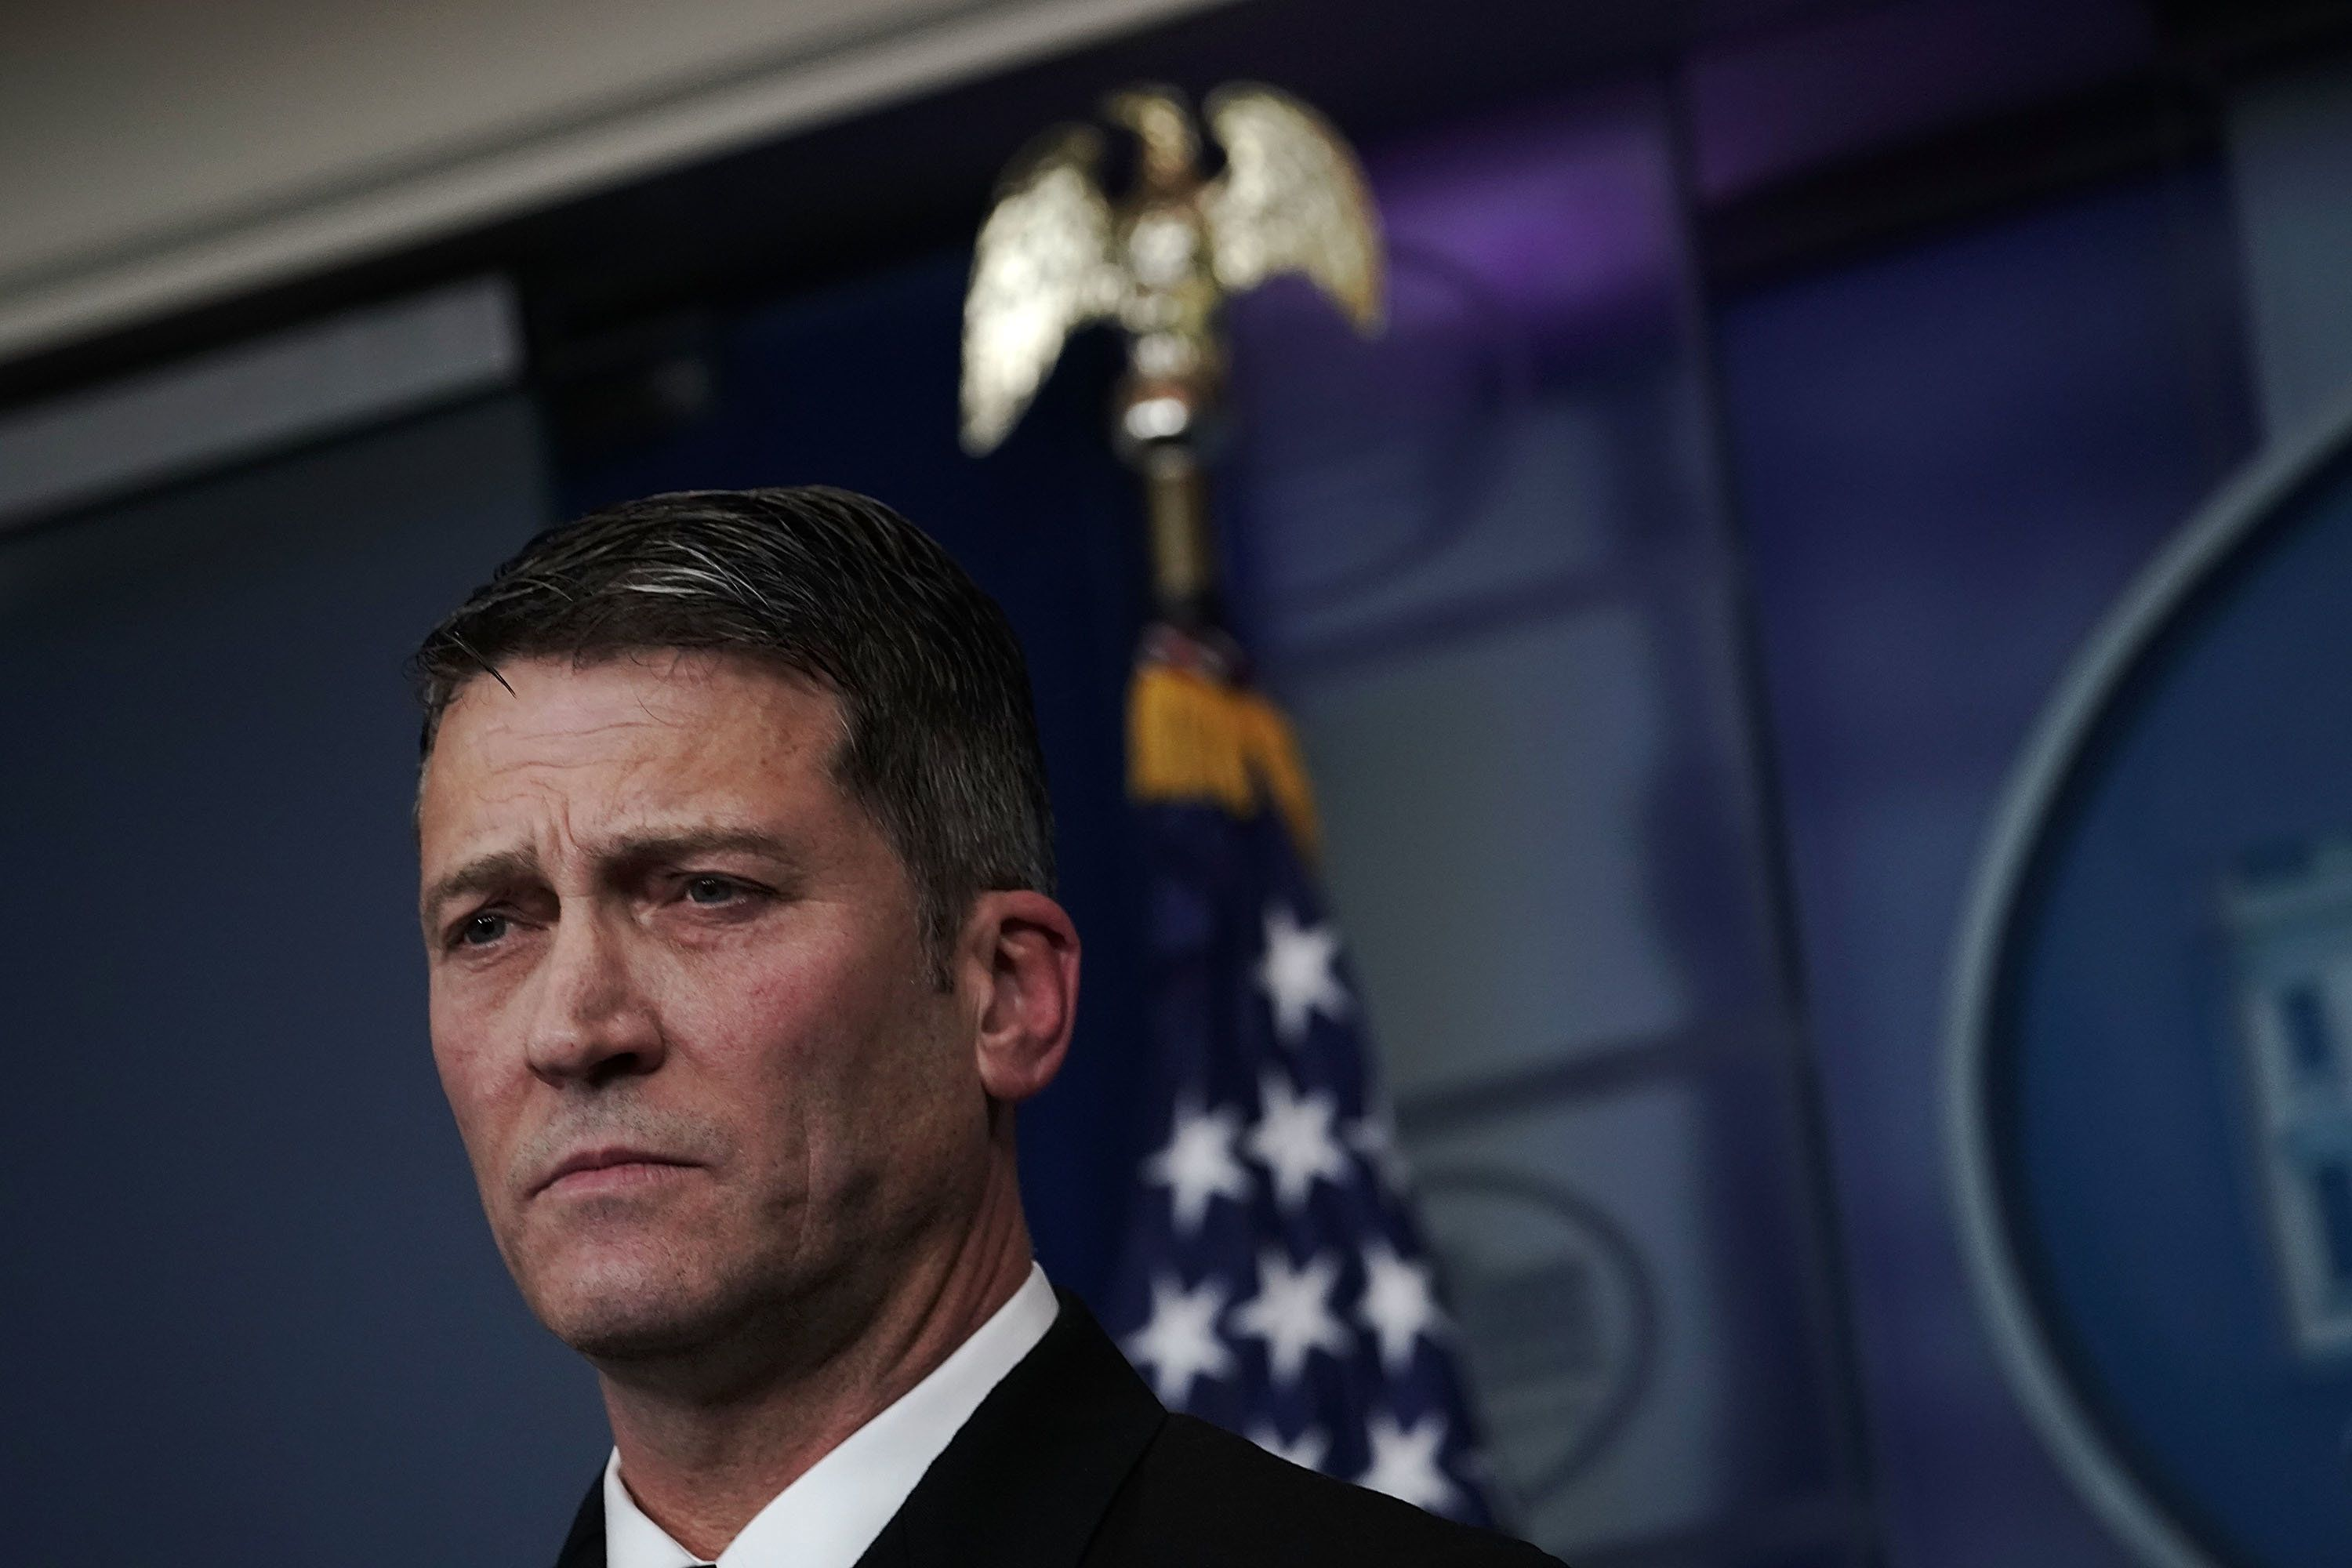 Ronny Jackson won't return as Trump's doctor